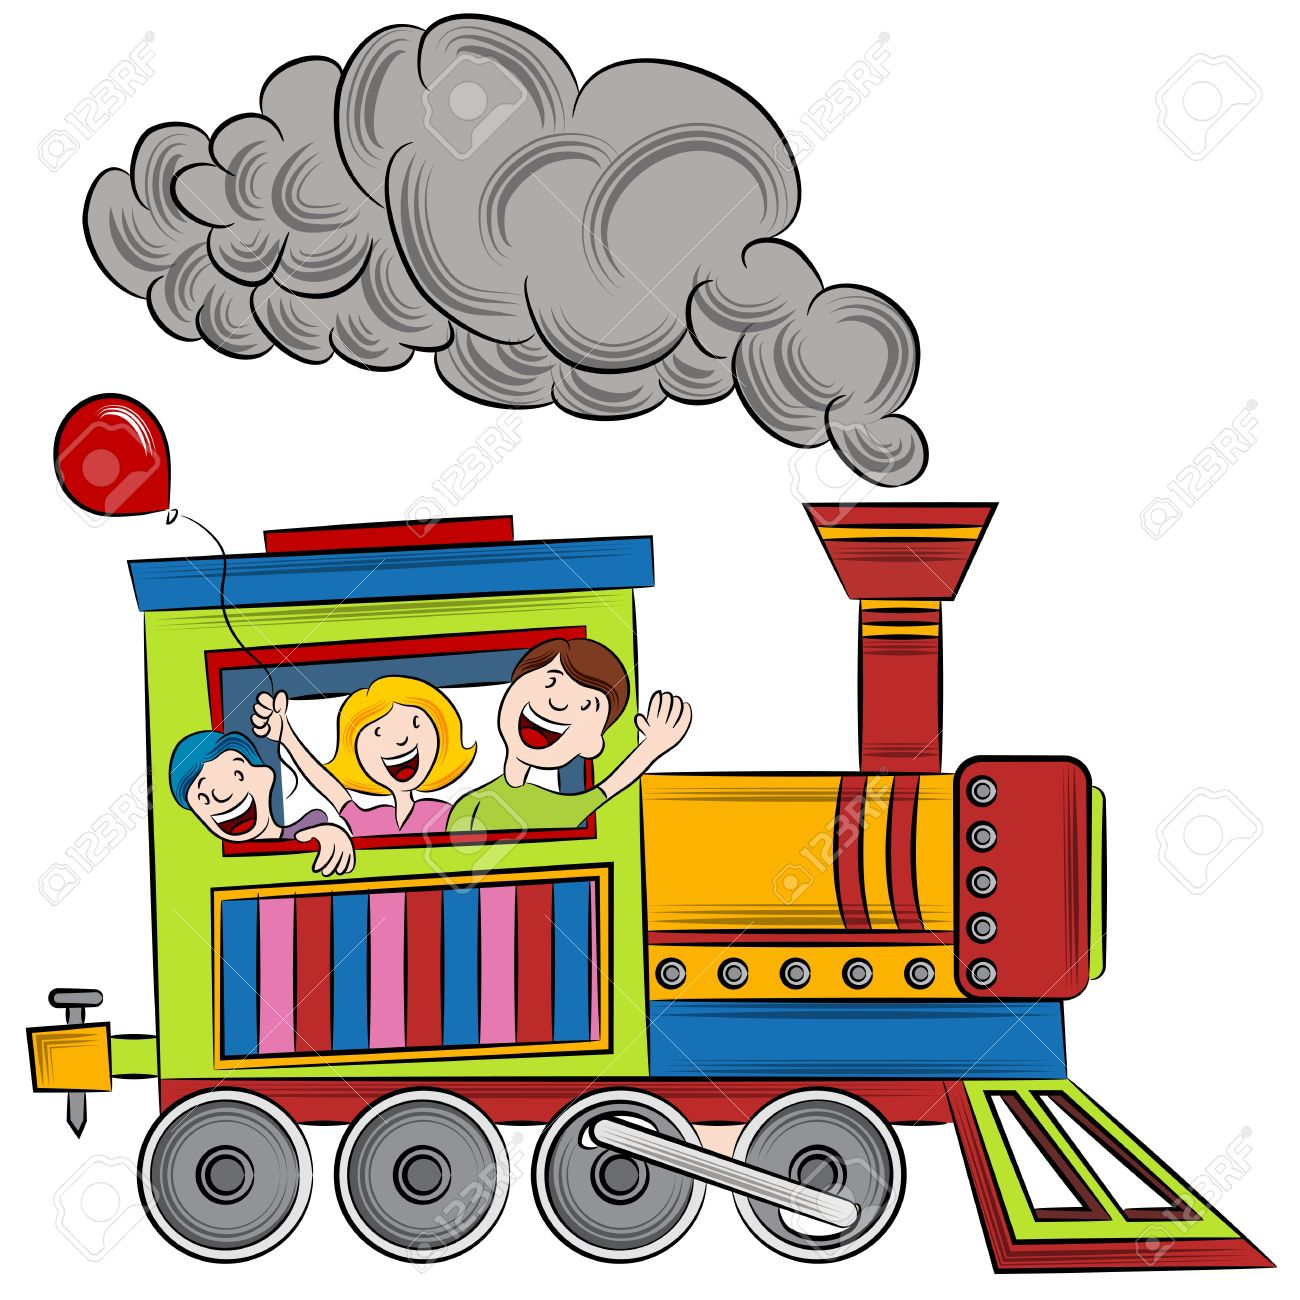 An Image Of A Children Riding On A Train Royalty Free Cliparts